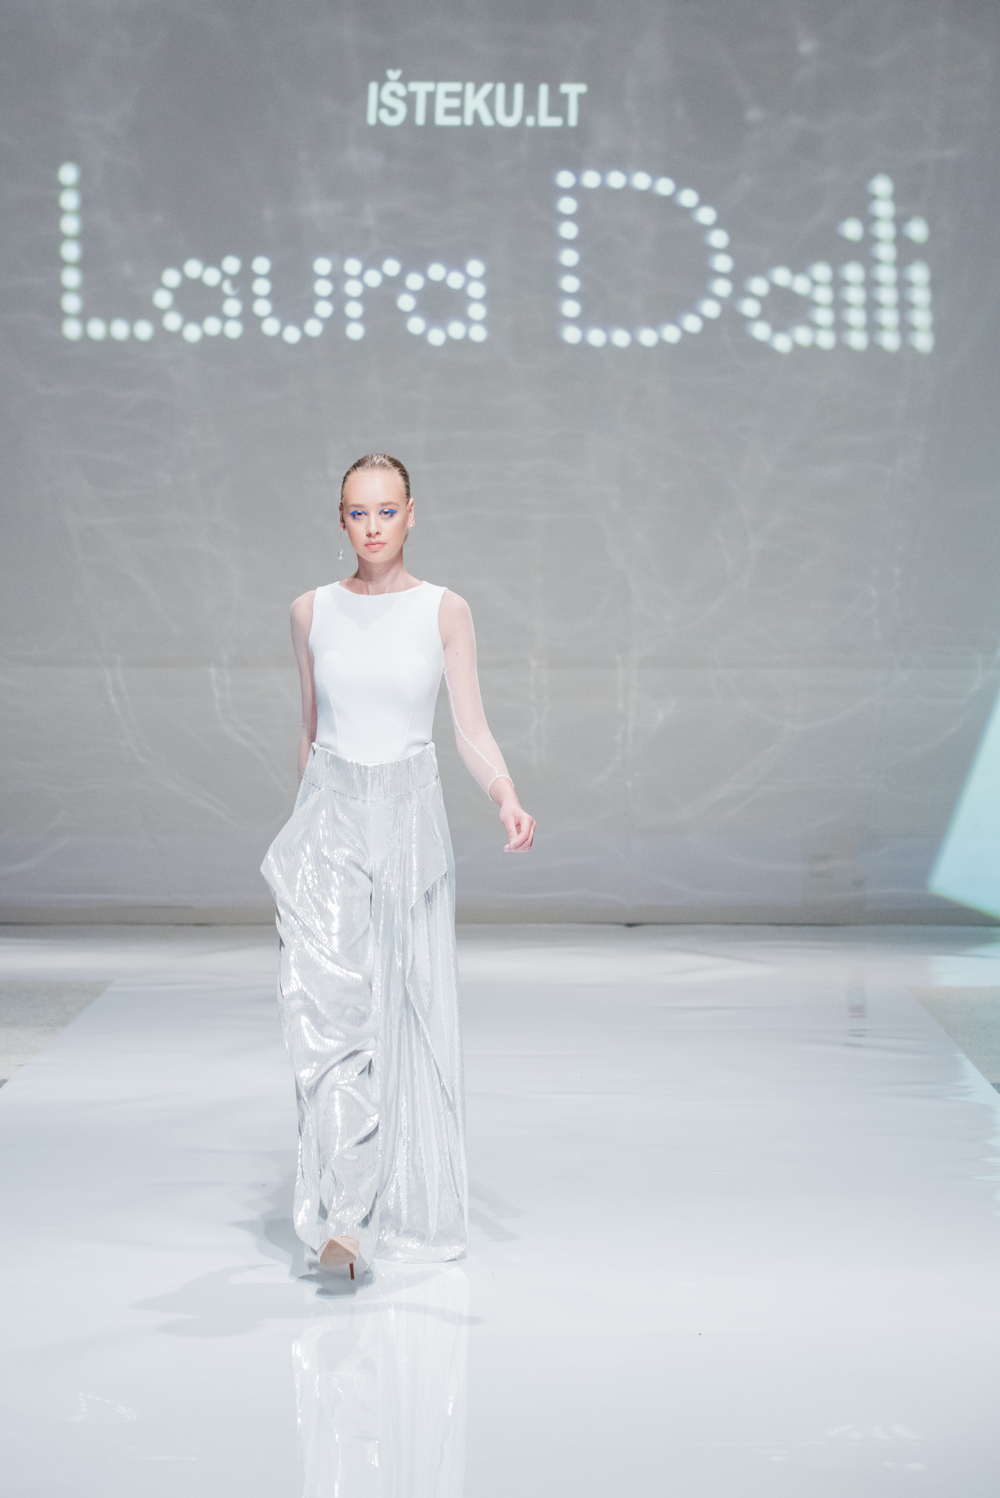 Laura Daili Bridal Collection 2017 Isteku lt (19)